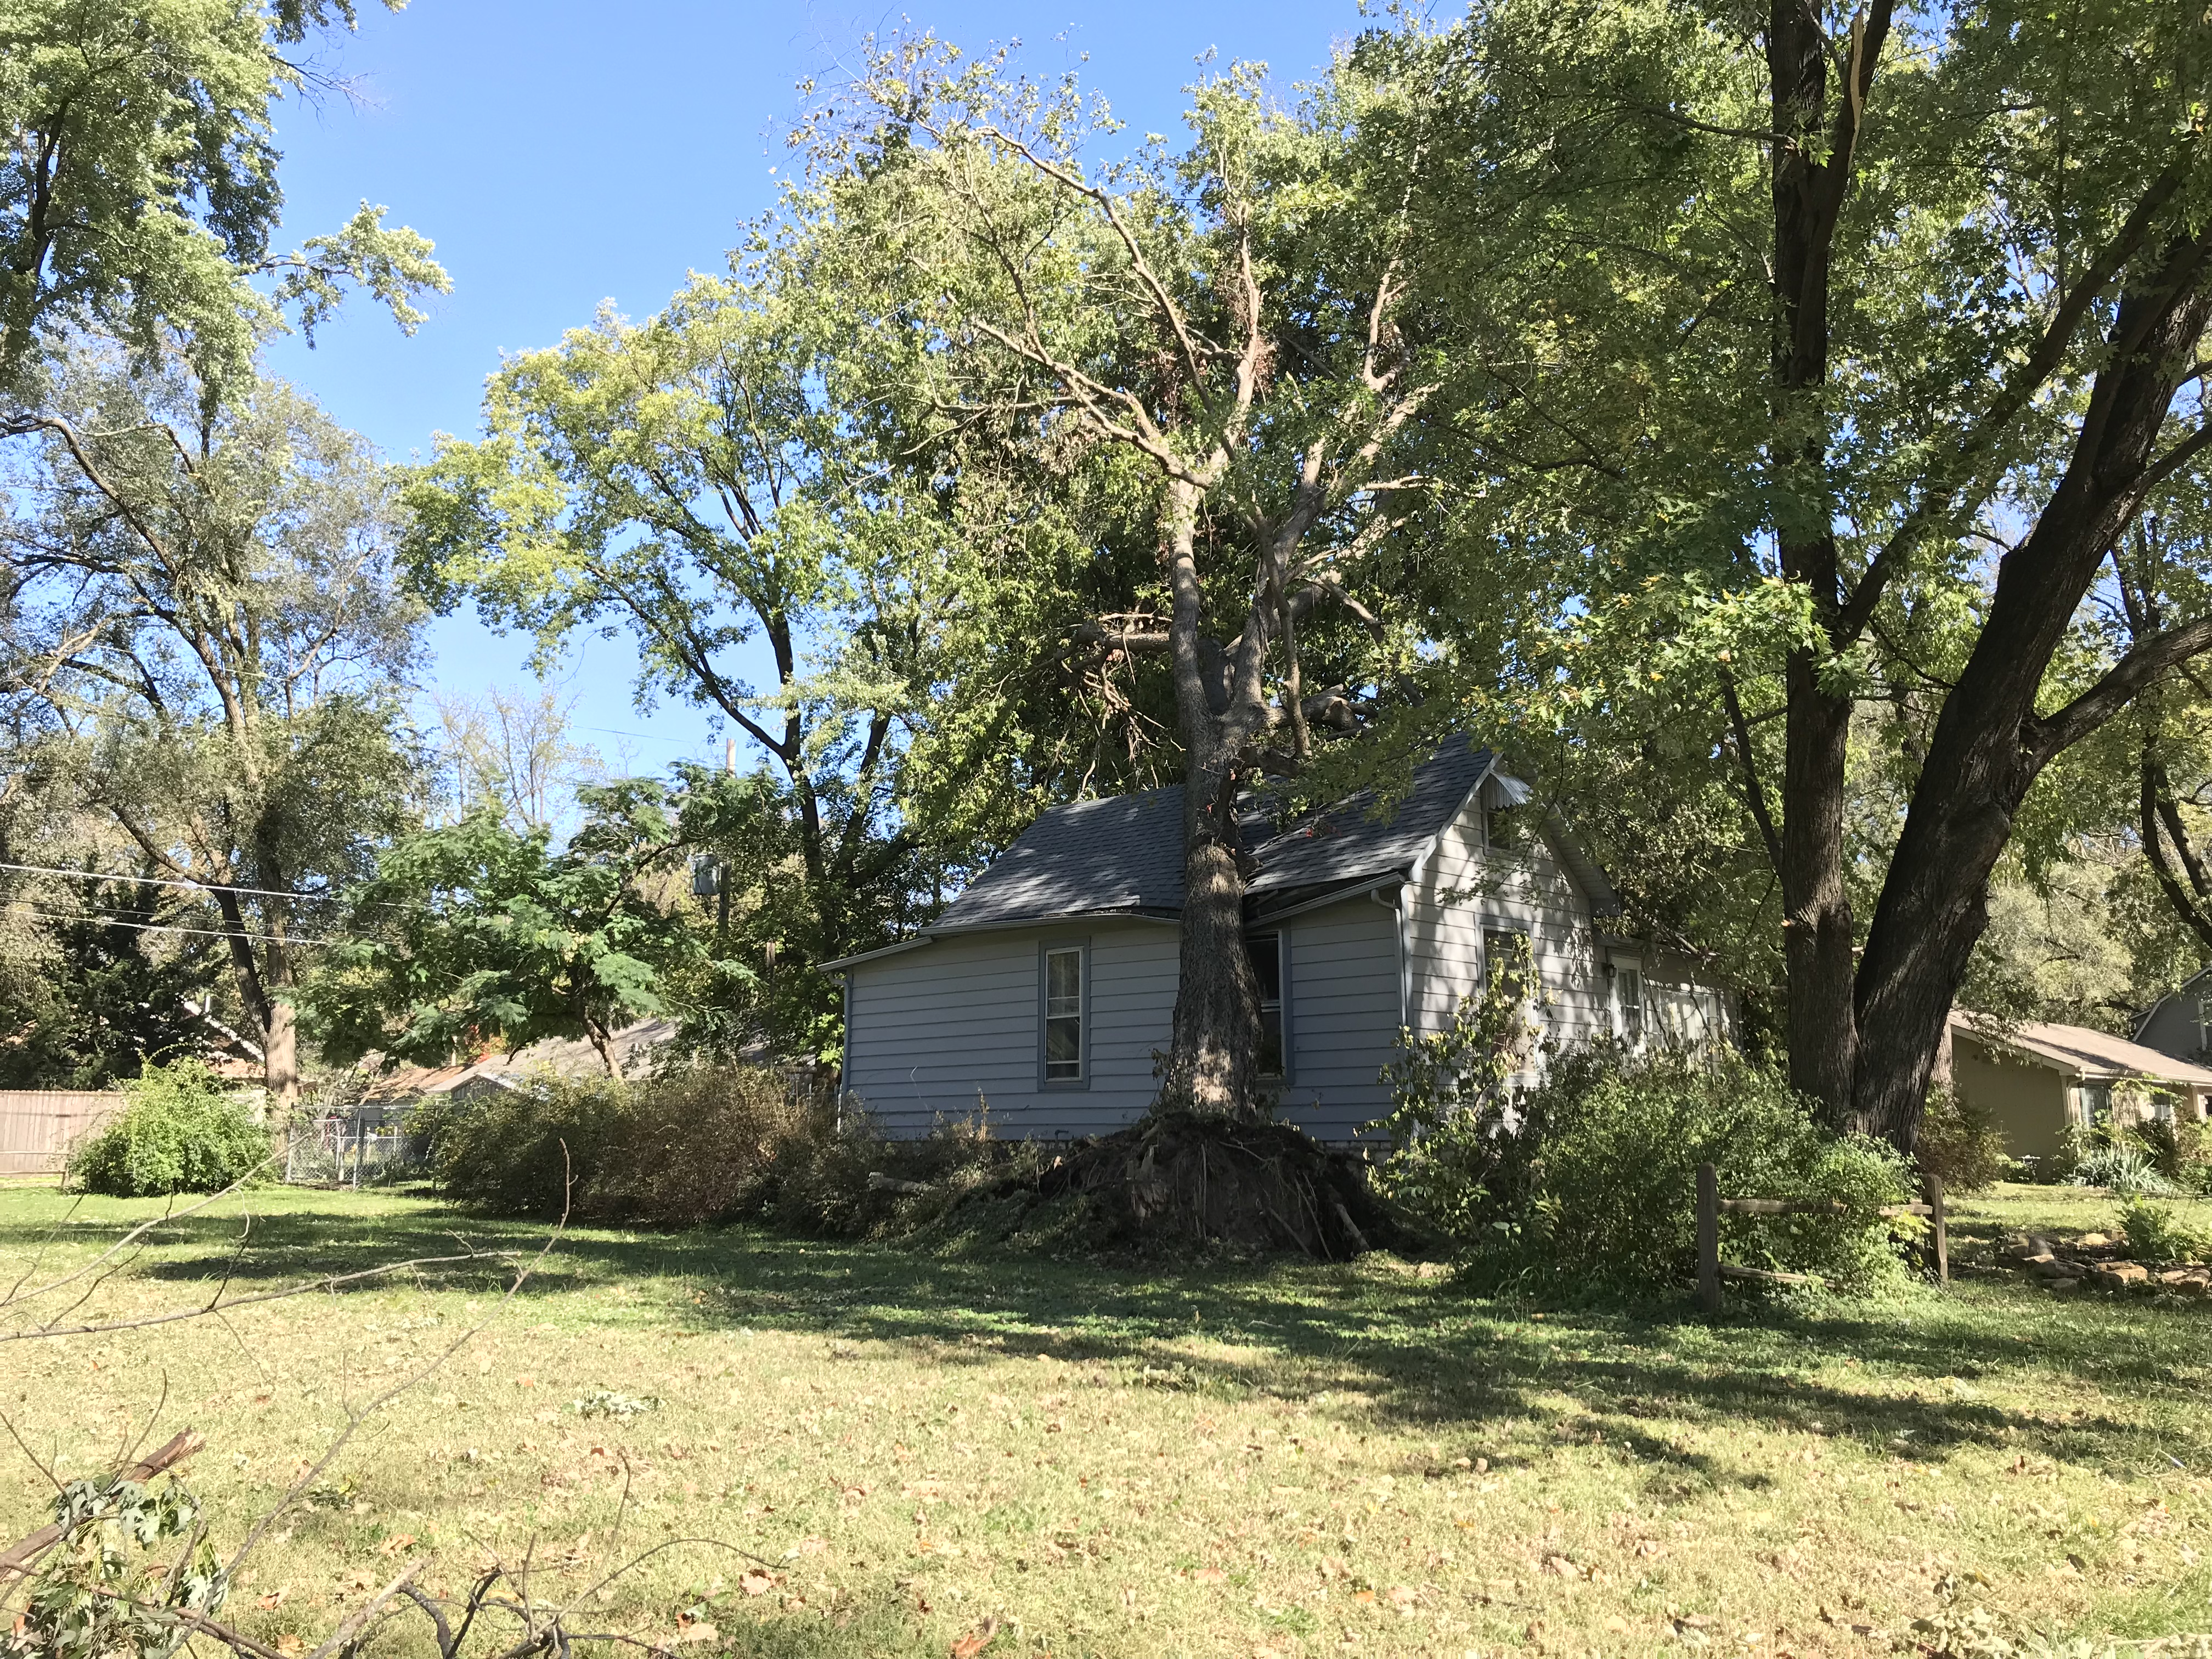 A cottonwood tree landed on this house on Lyon Street. (Photo by Danny Mantyla)